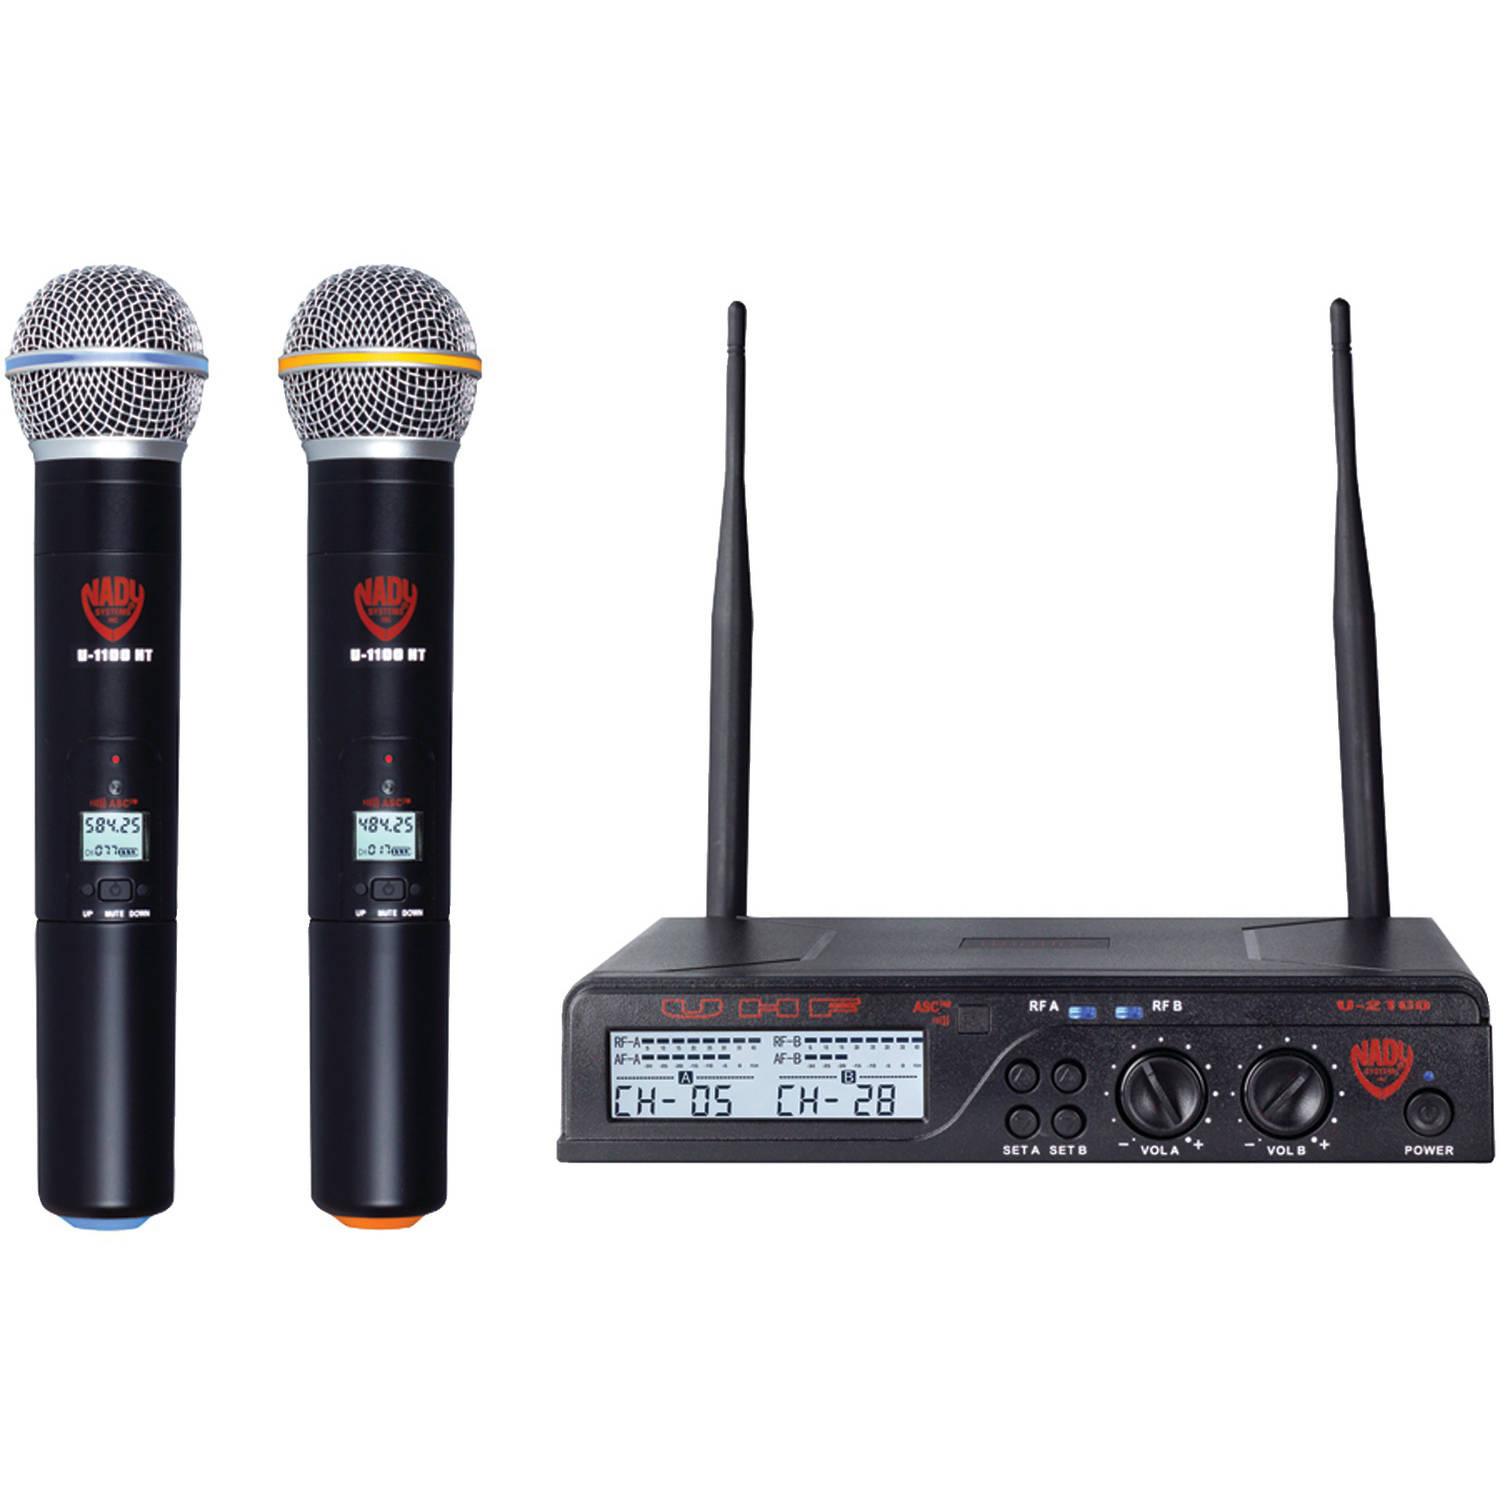 Nady U-2100 HT Band A b Dual UHF Wireless Handheld Microphone System by Nady